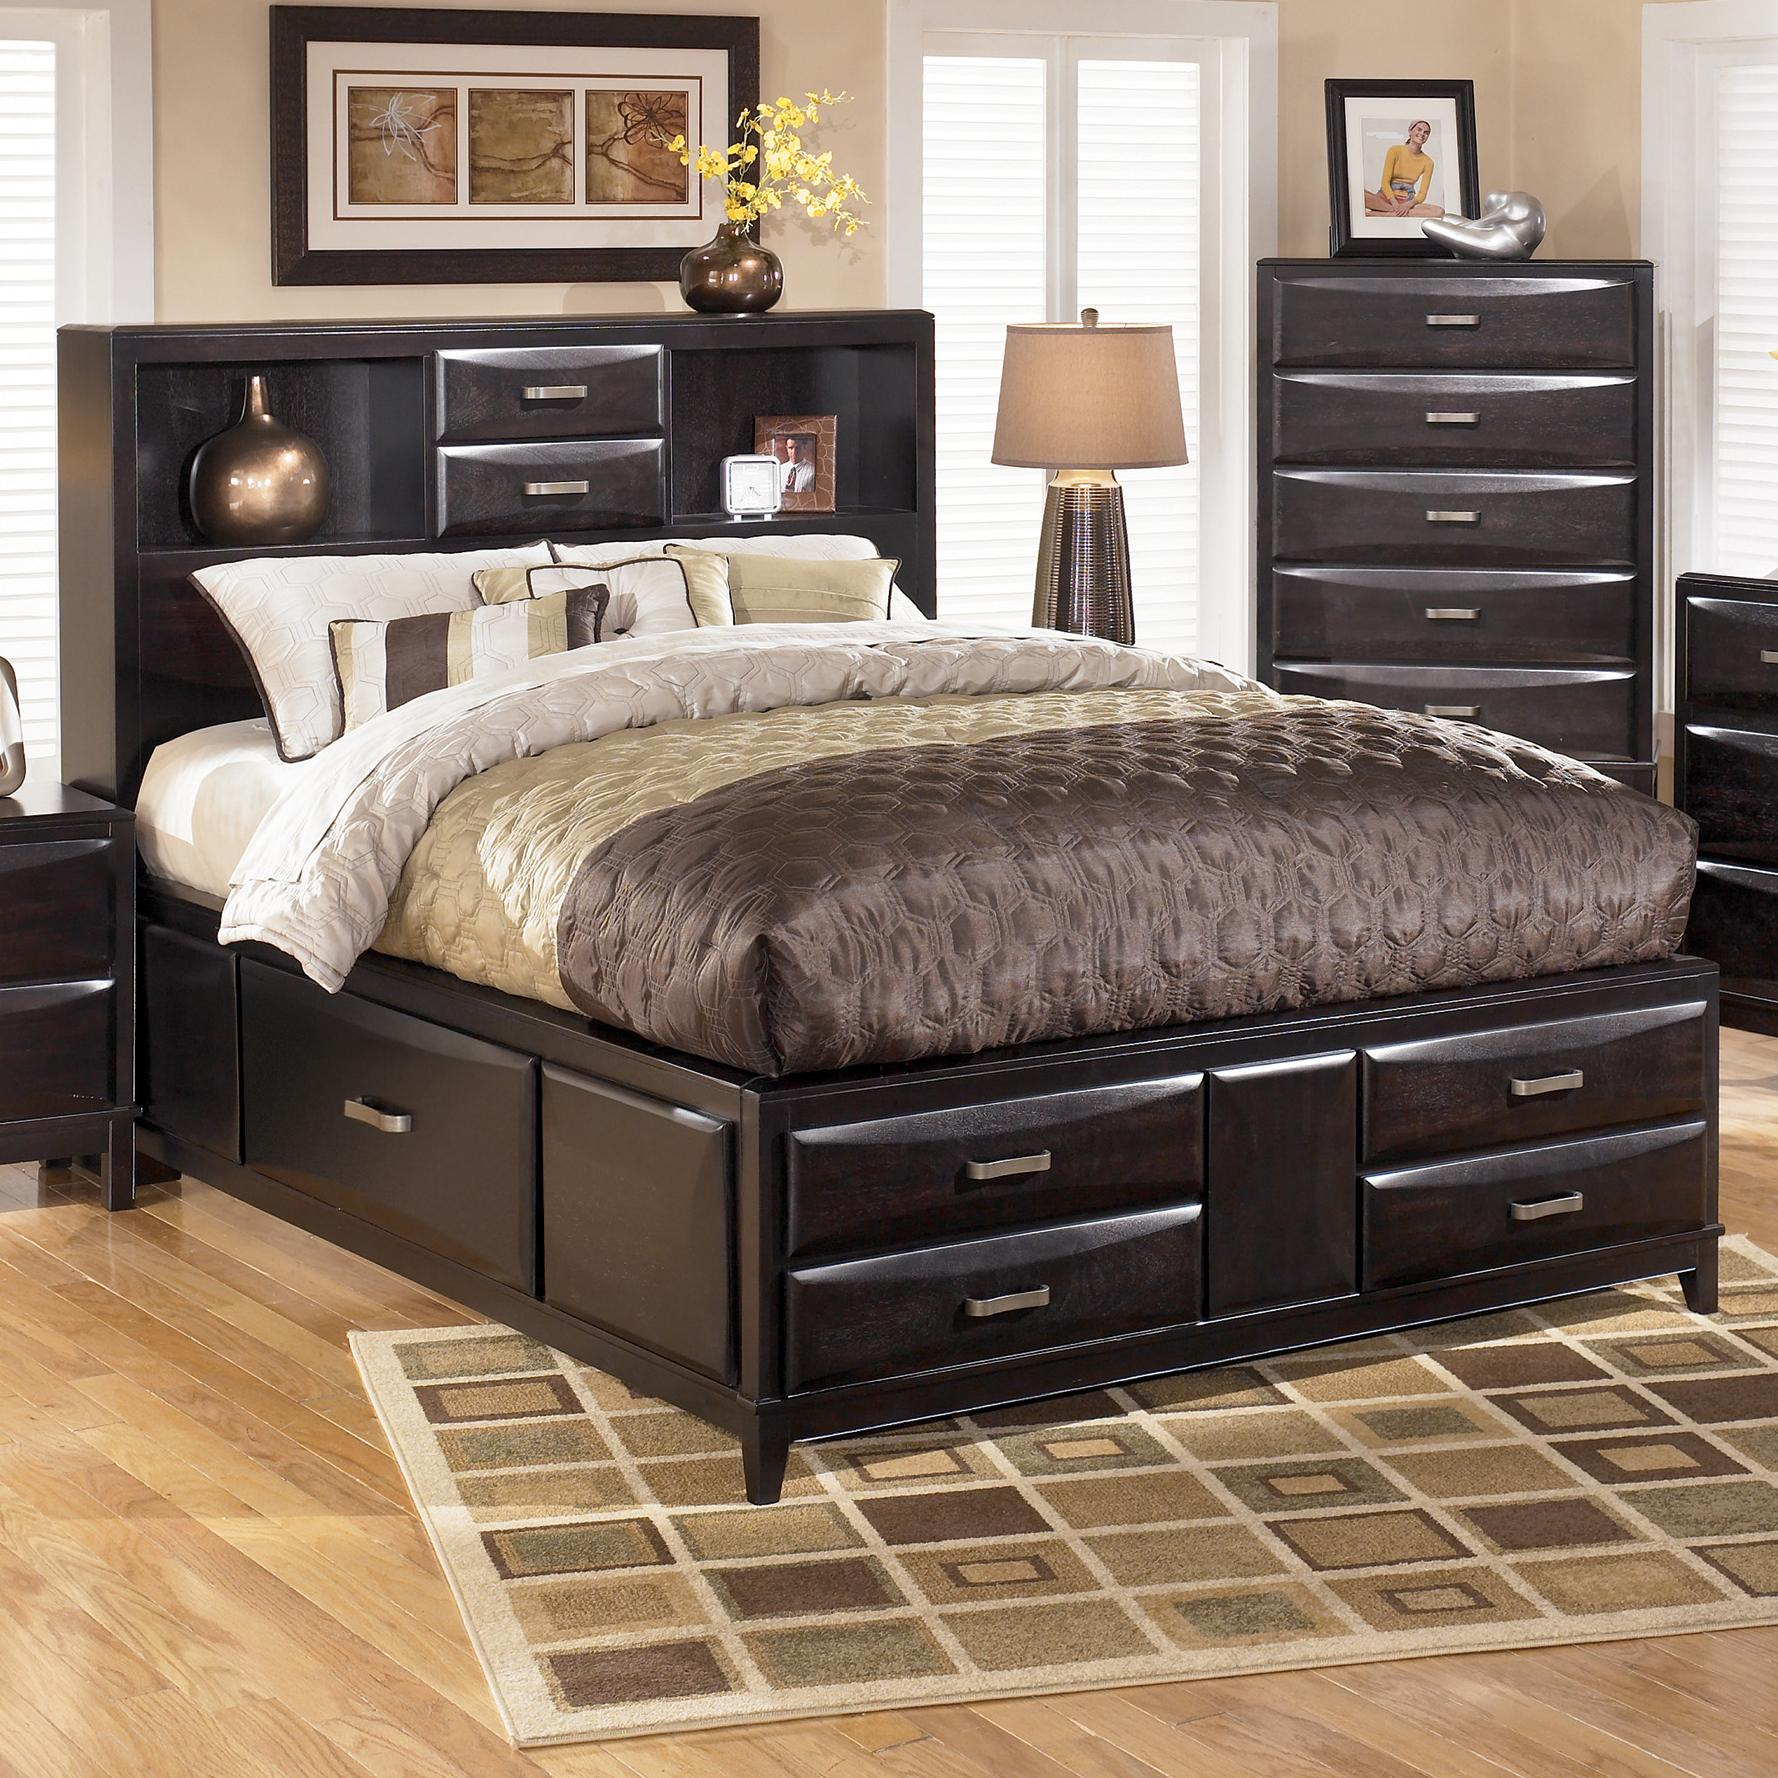 Magnificent Ashley Furniture Louisville for Home Furniture Ideas: Ashley Furniture Clearance | Ashley Furniture Rochester Mn | Ashley Furniture Louisville